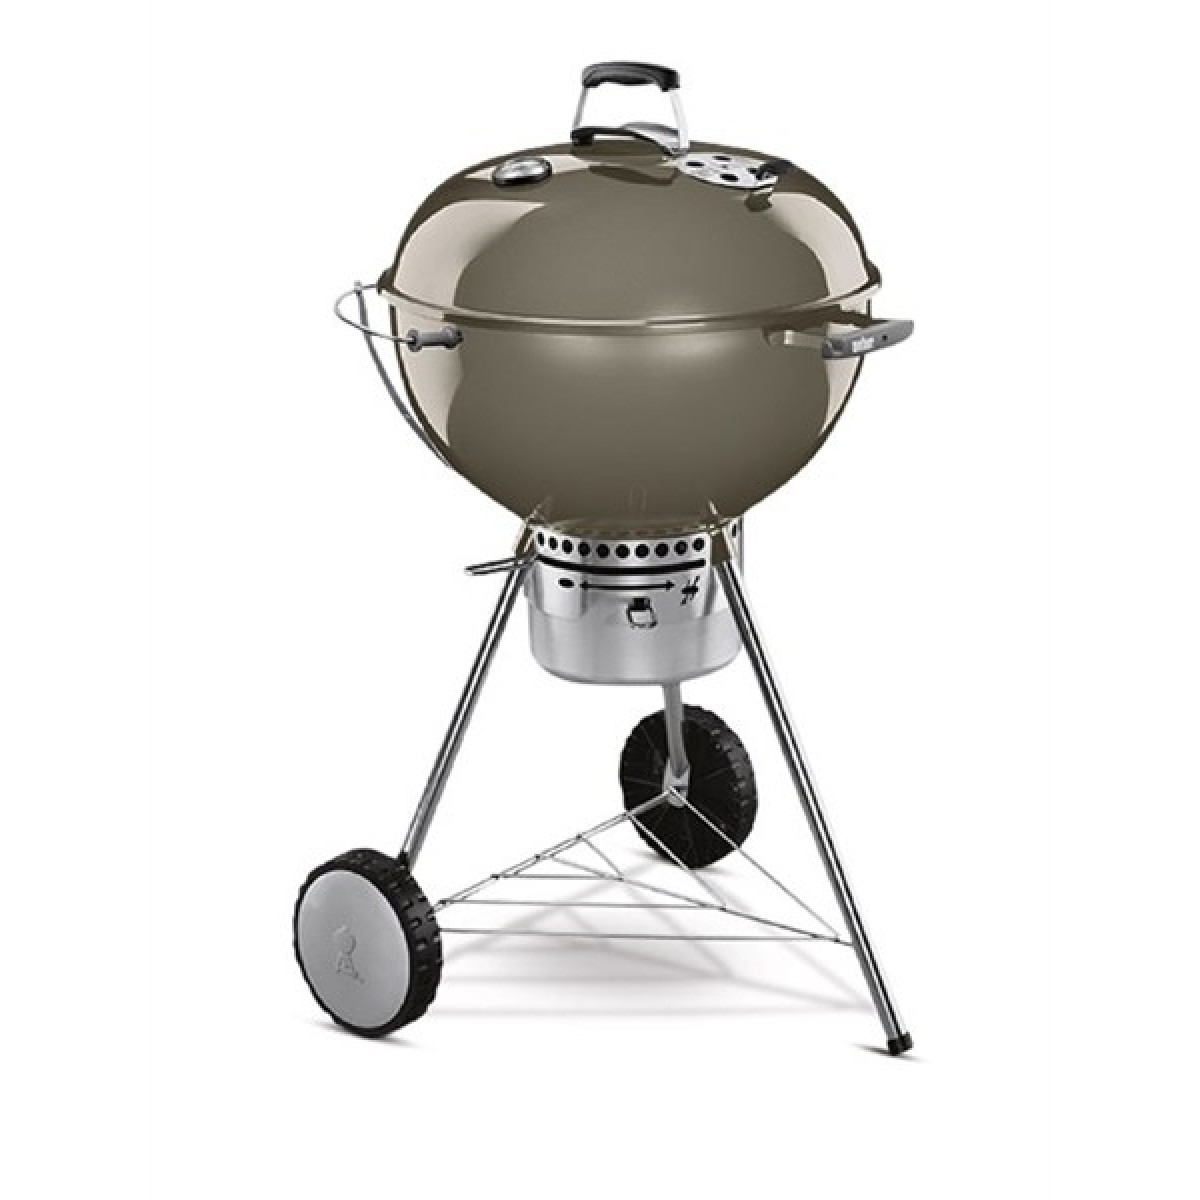 Weber Grill 57 Cm Gbs Weber Master Touch Weber Master Touch Gbs Black Charcoal